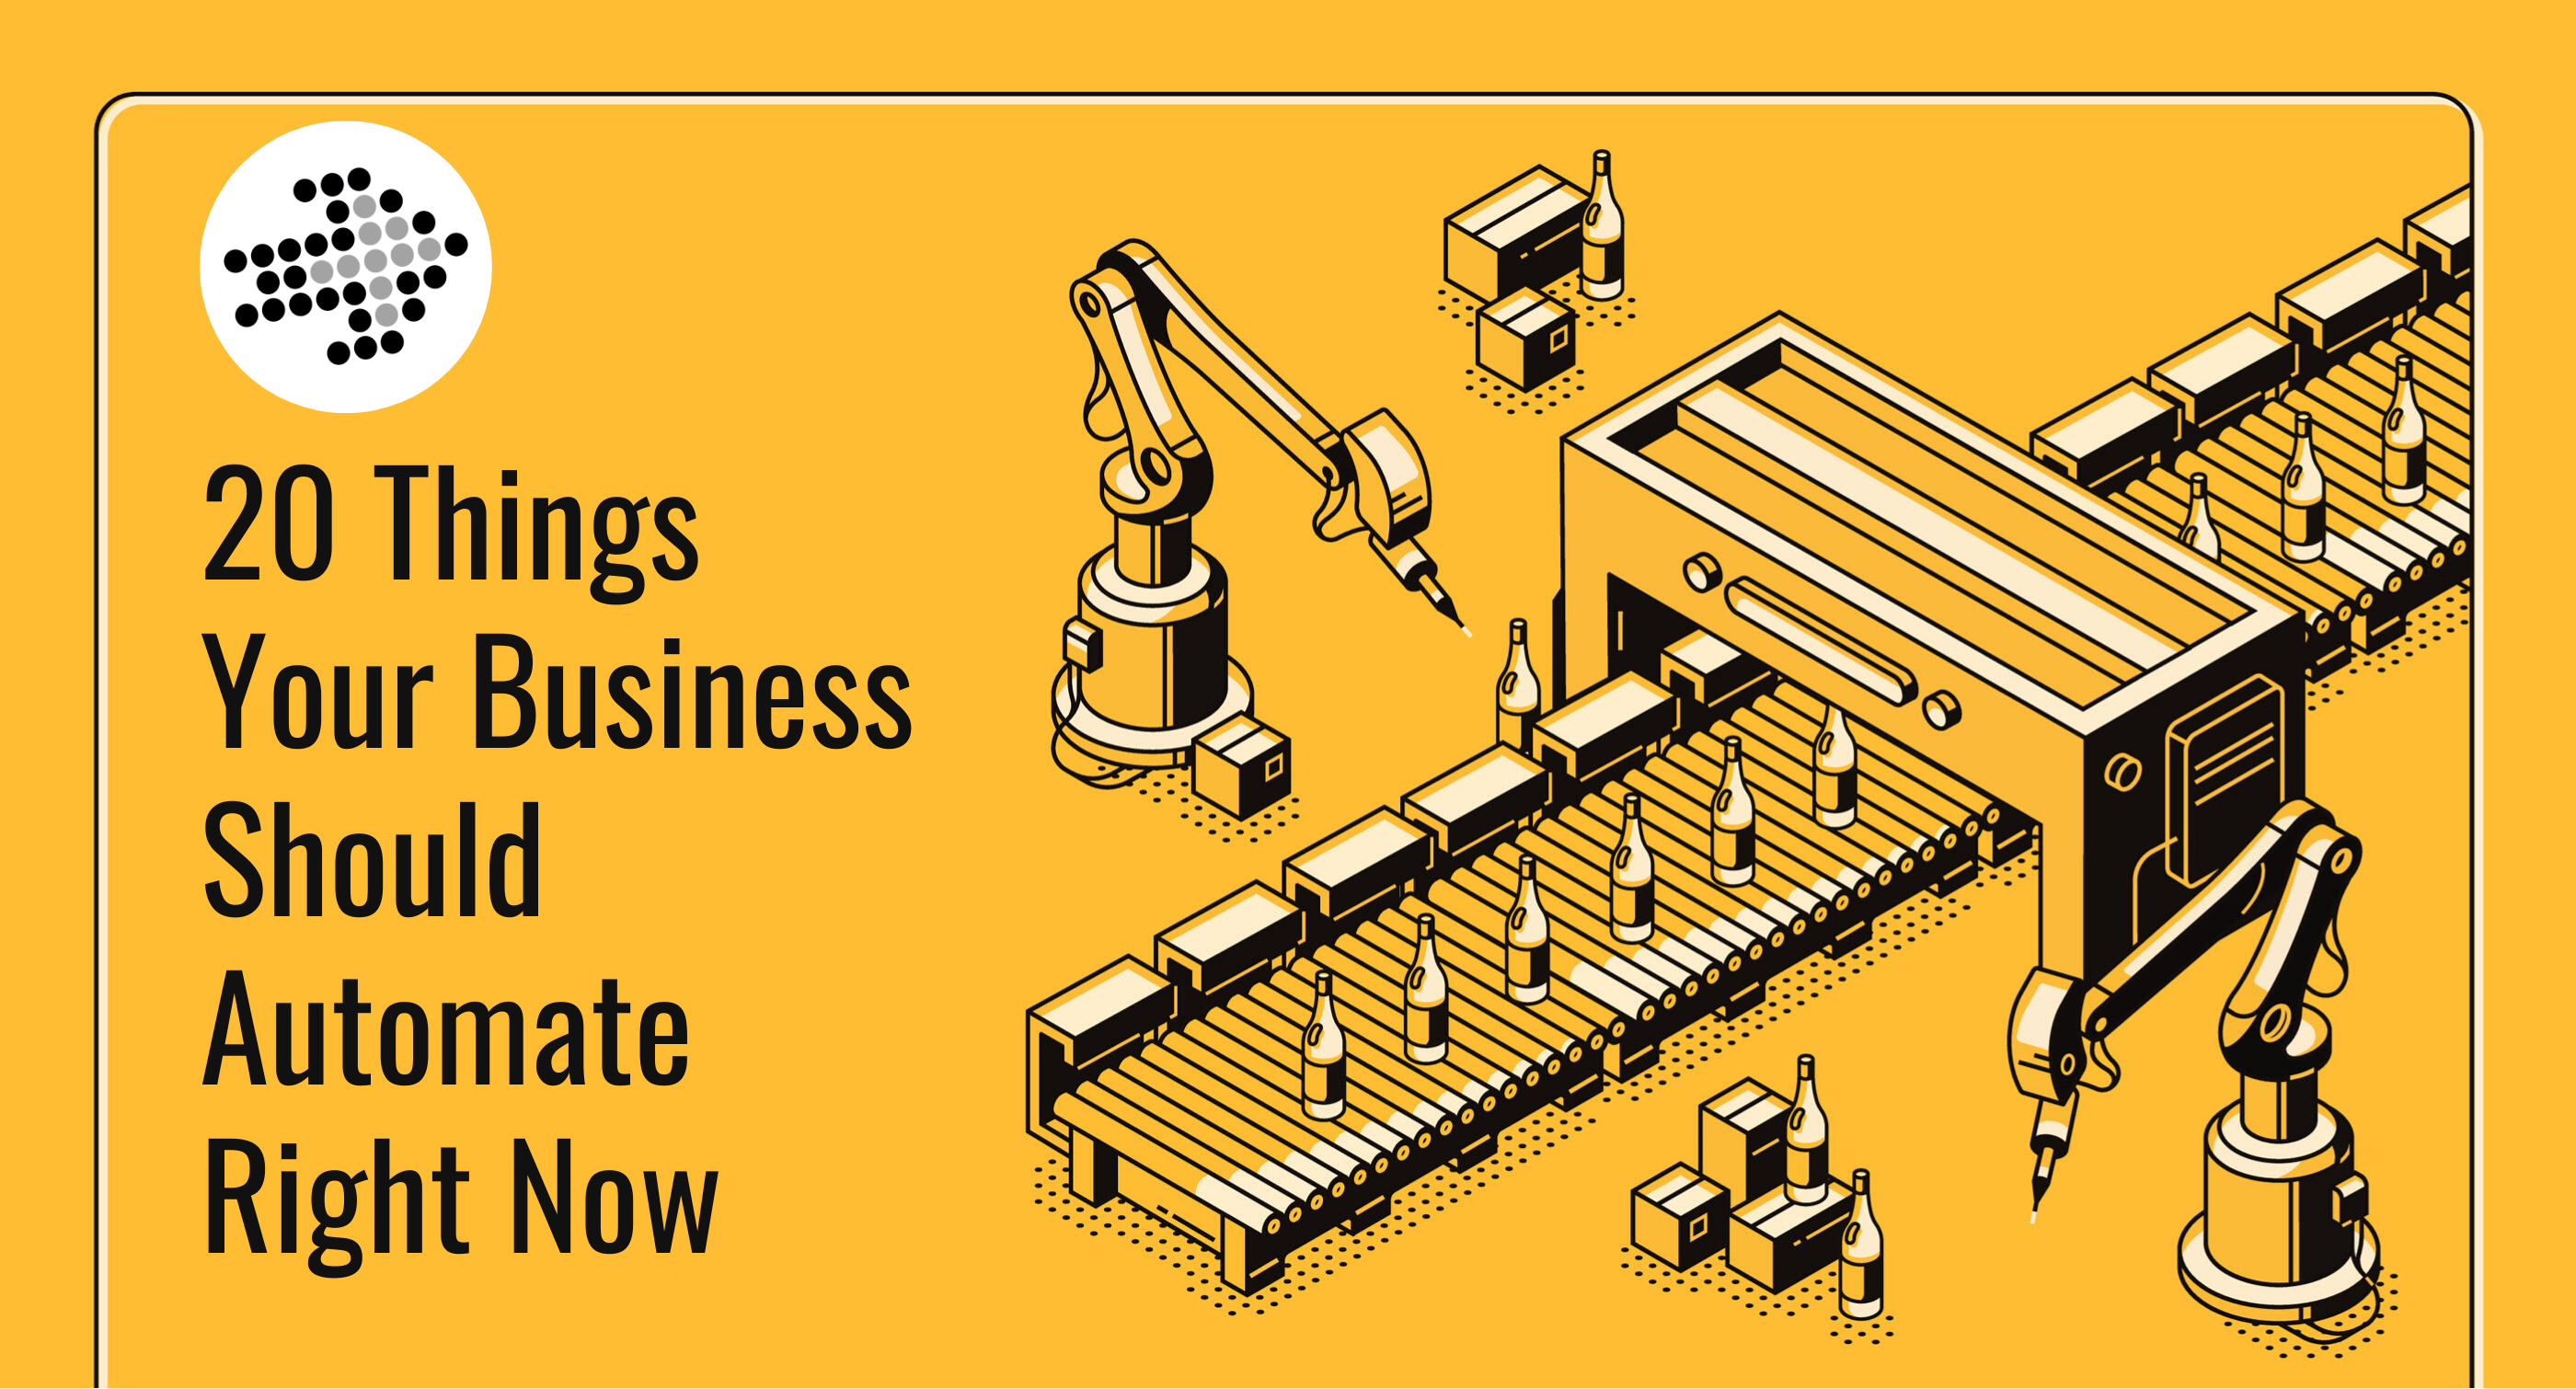 20 Things Your Business Should Automate Right Now